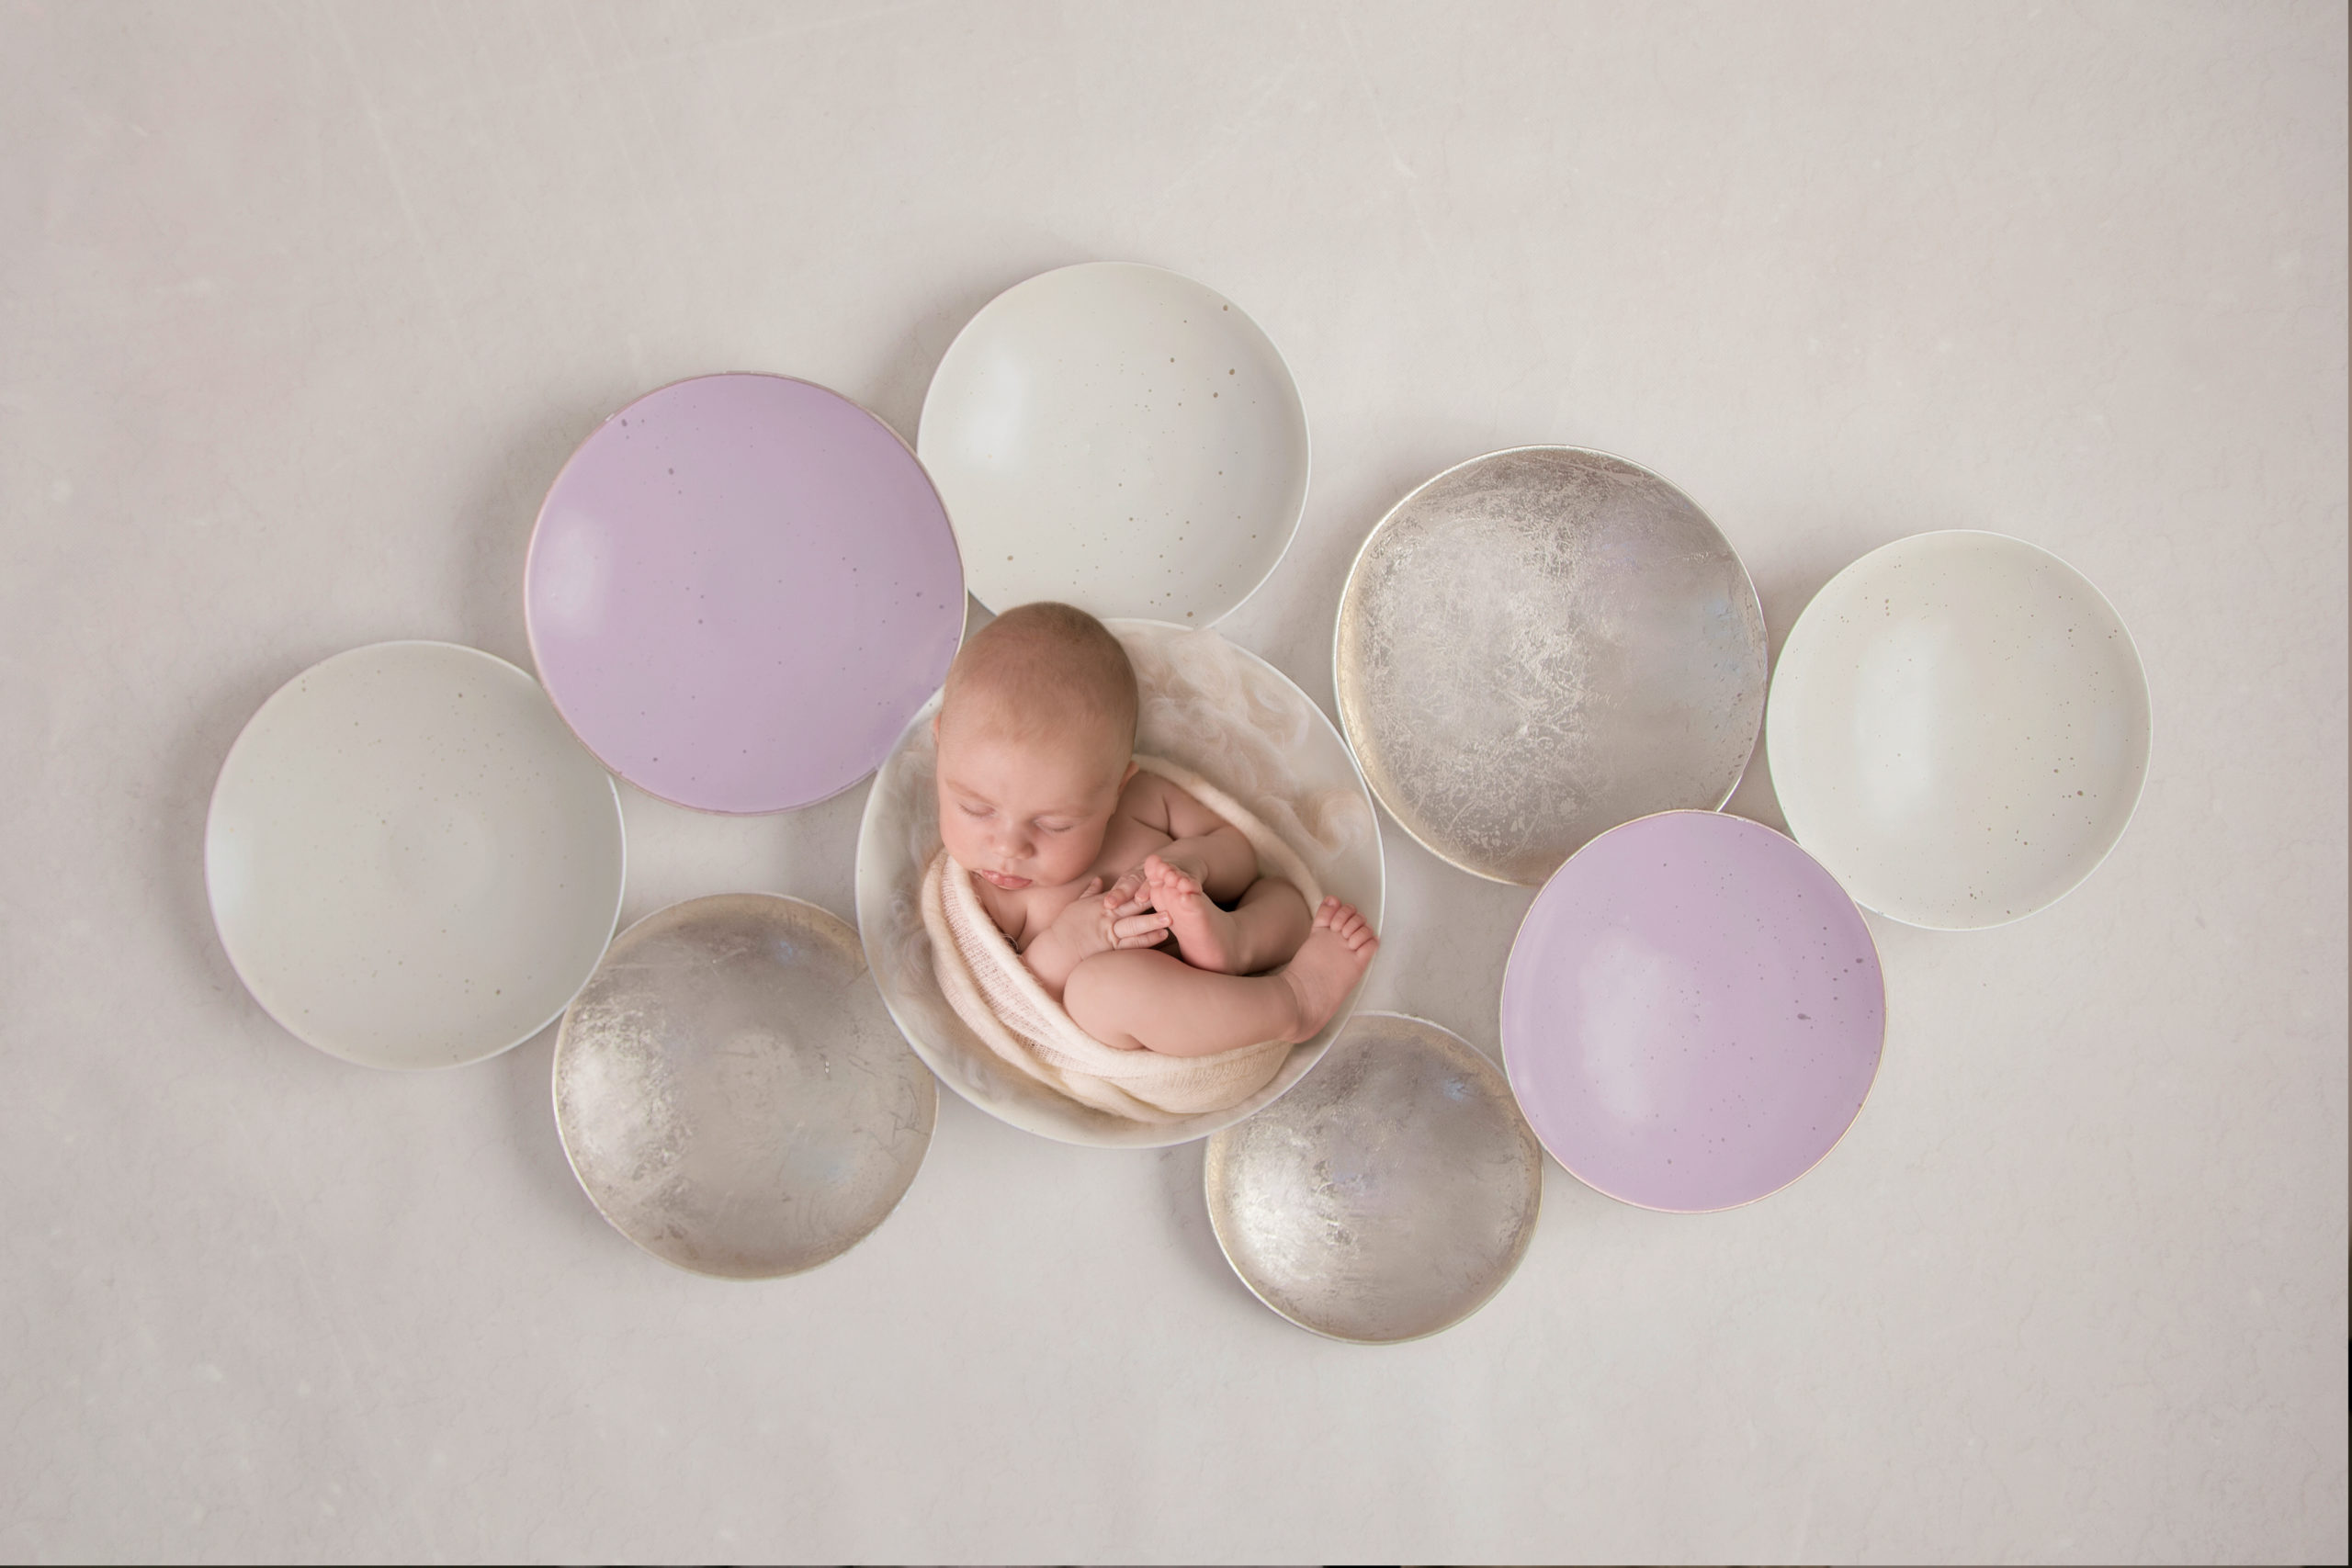 Newborn photo session baby photography newborn baby in a bowl beige natural tones baby in cute outfit newborn photoshoot London Studio newbonr photography South West London Wimbledon SW19